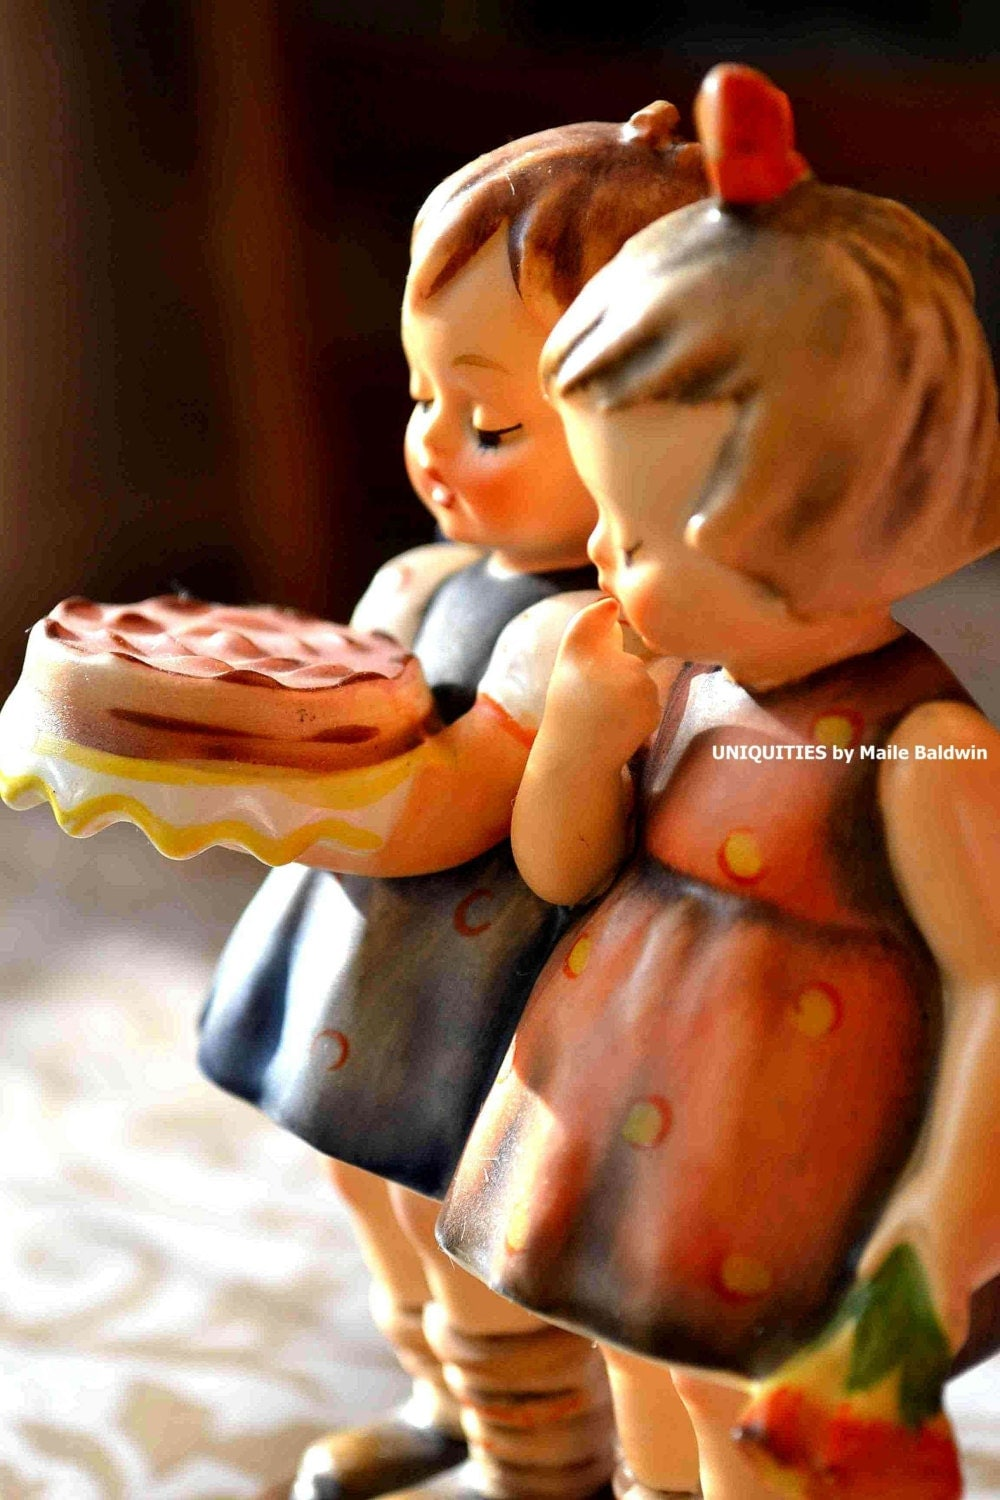 birthday cake hummel figurine photograph art photography 8 x. Black Bedroom Furniture Sets. Home Design Ideas